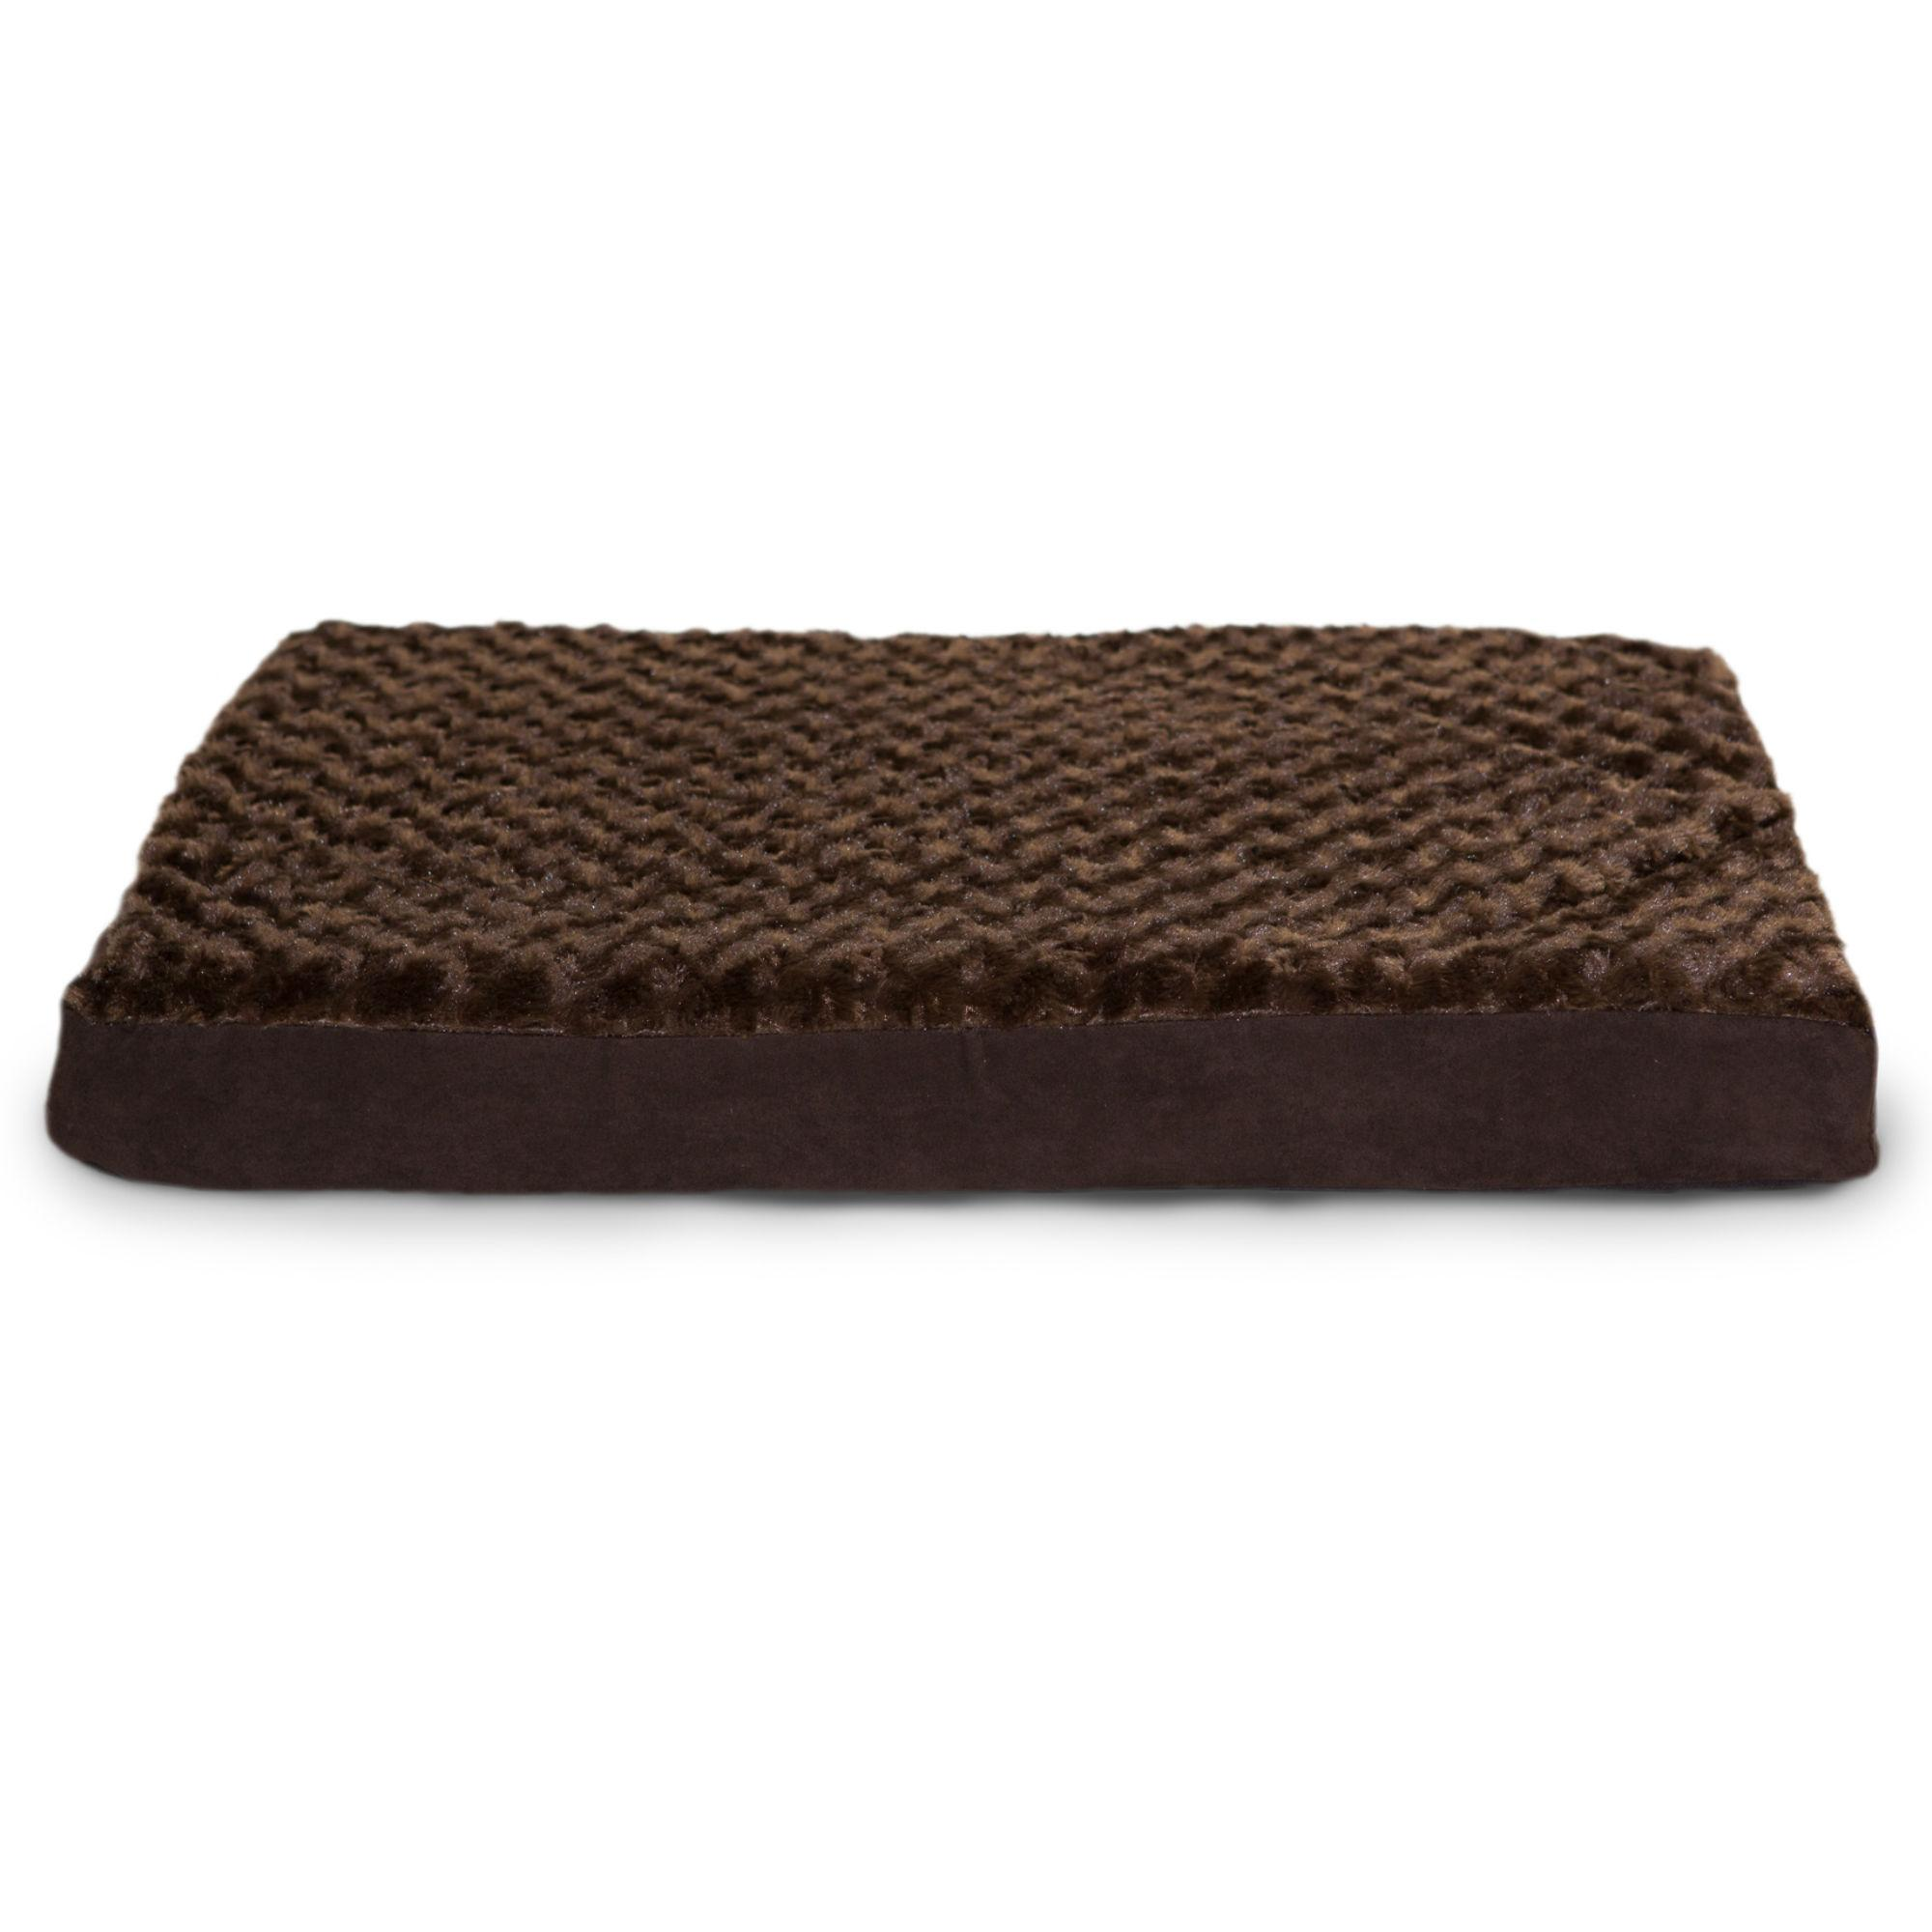 FurHaven Ultra Plush Deluxe Cooling Gel Top Pet Bed - Chocolate